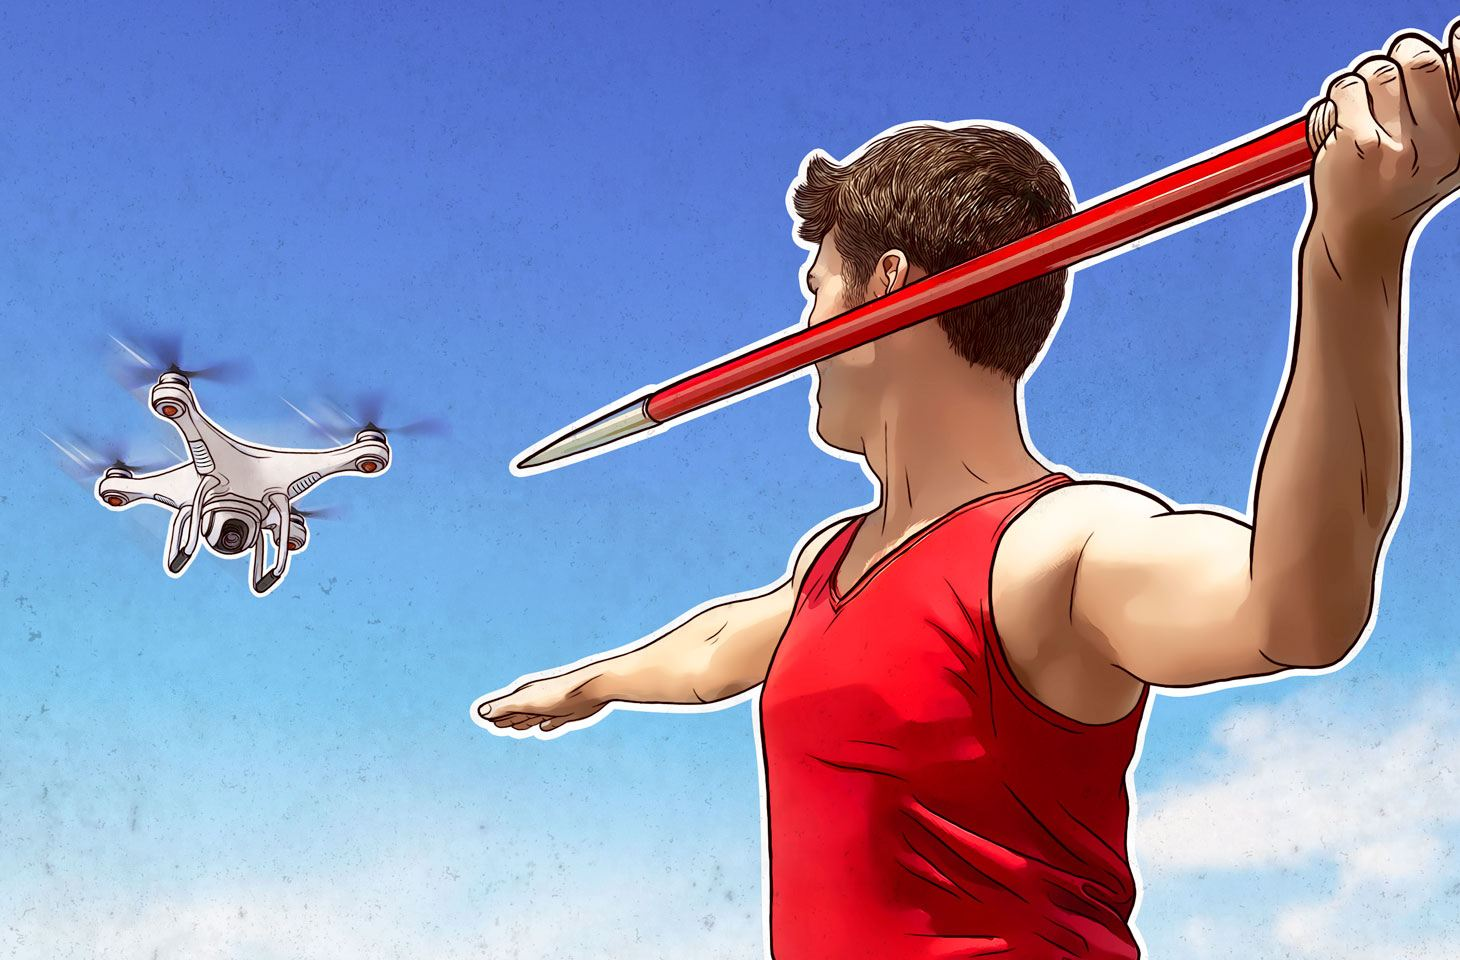 Only birds in the sky: Kaspersky launches new solution to combat privacy and security risks from civilian drones 1